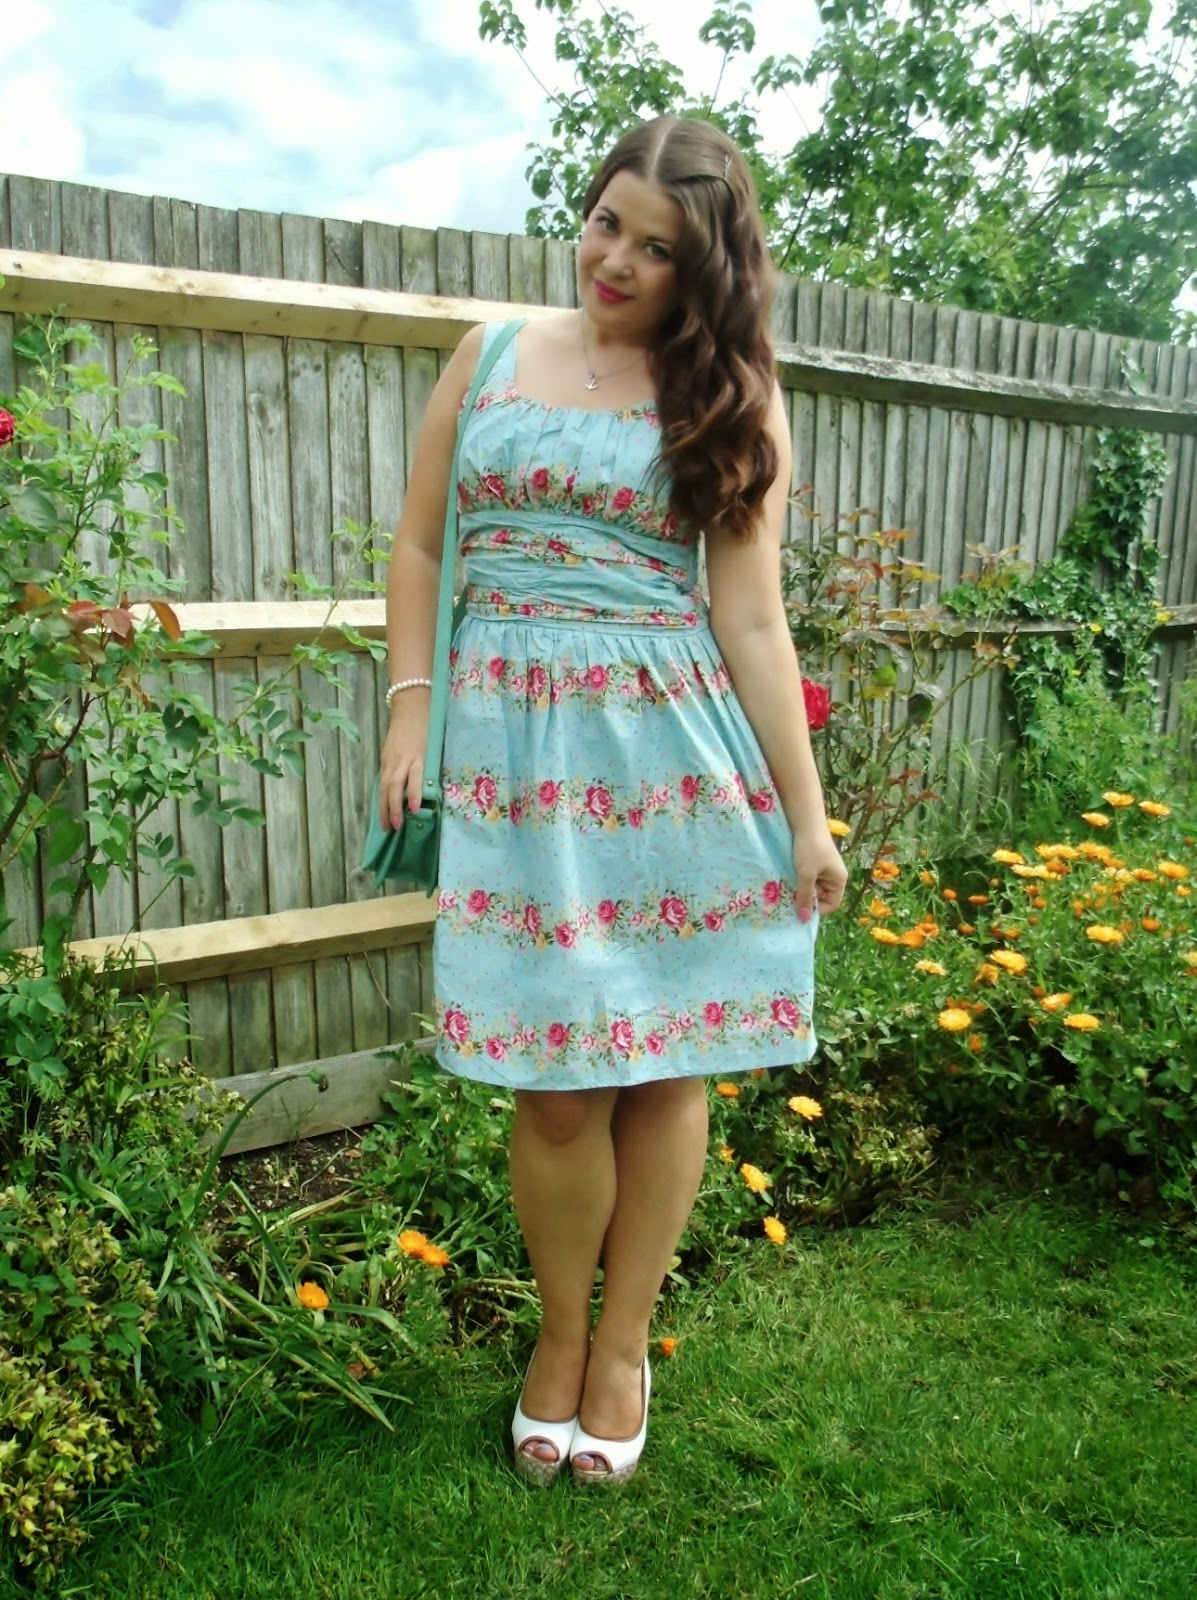 VOODOO VIXEN VINTAGE STYLE RETRO PIN UP SUMMER FLORAL ANGIE DRESS